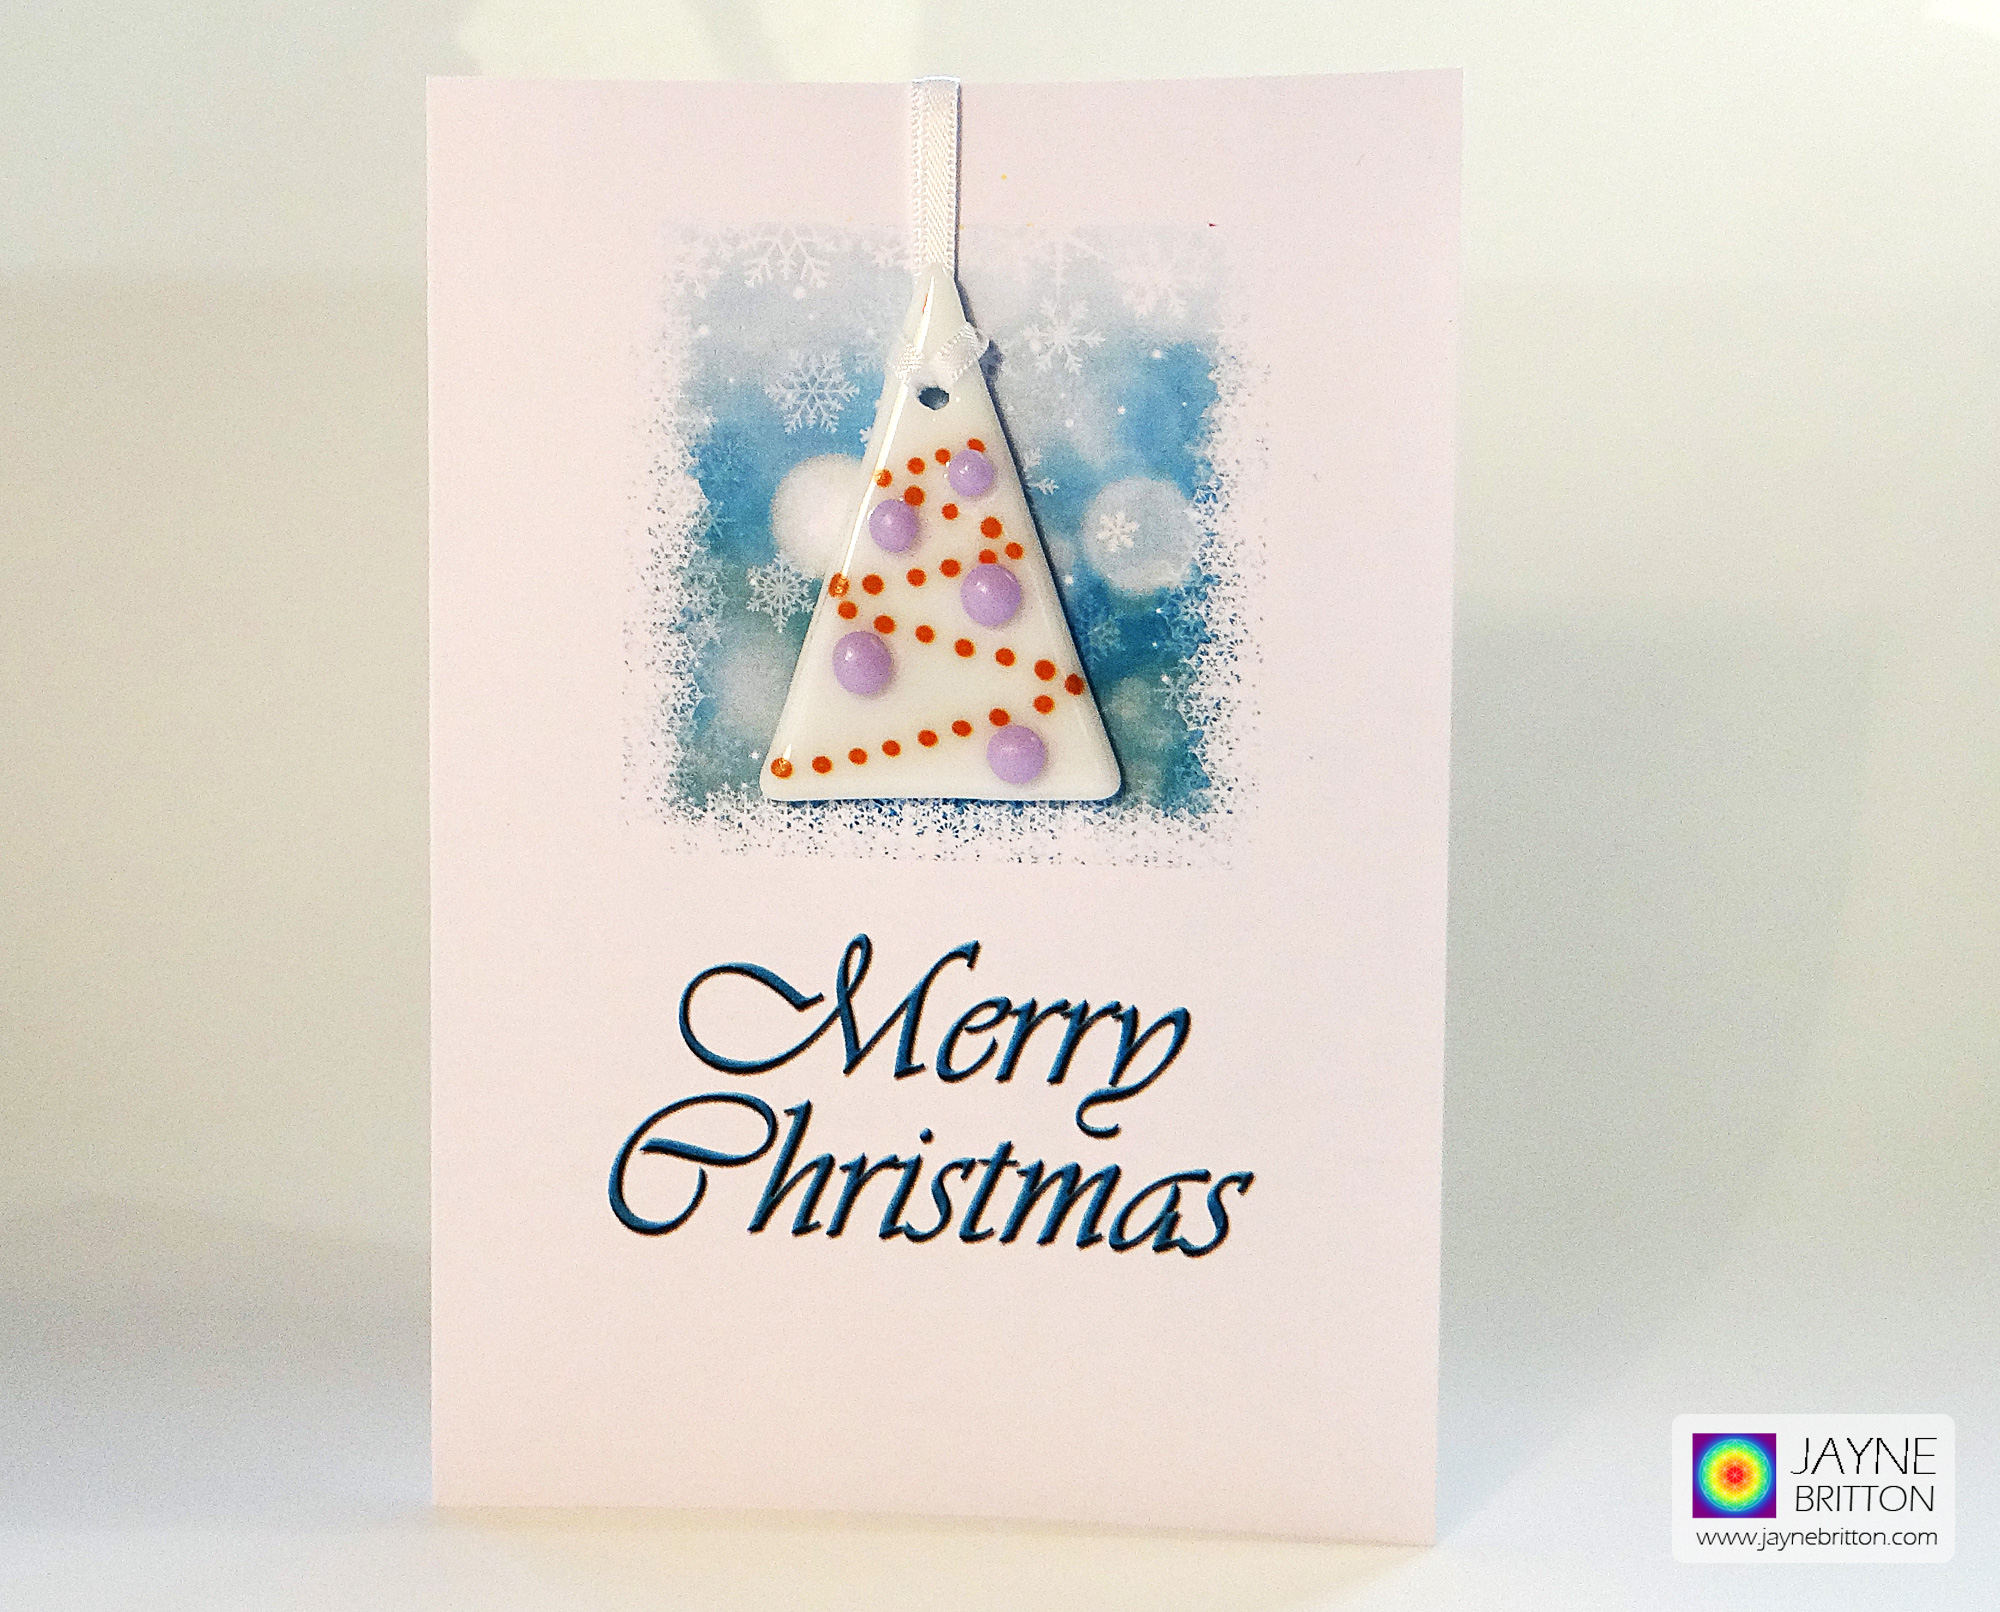 Fused glass Christmas Tree decoration gift card - white tree, purple baubles